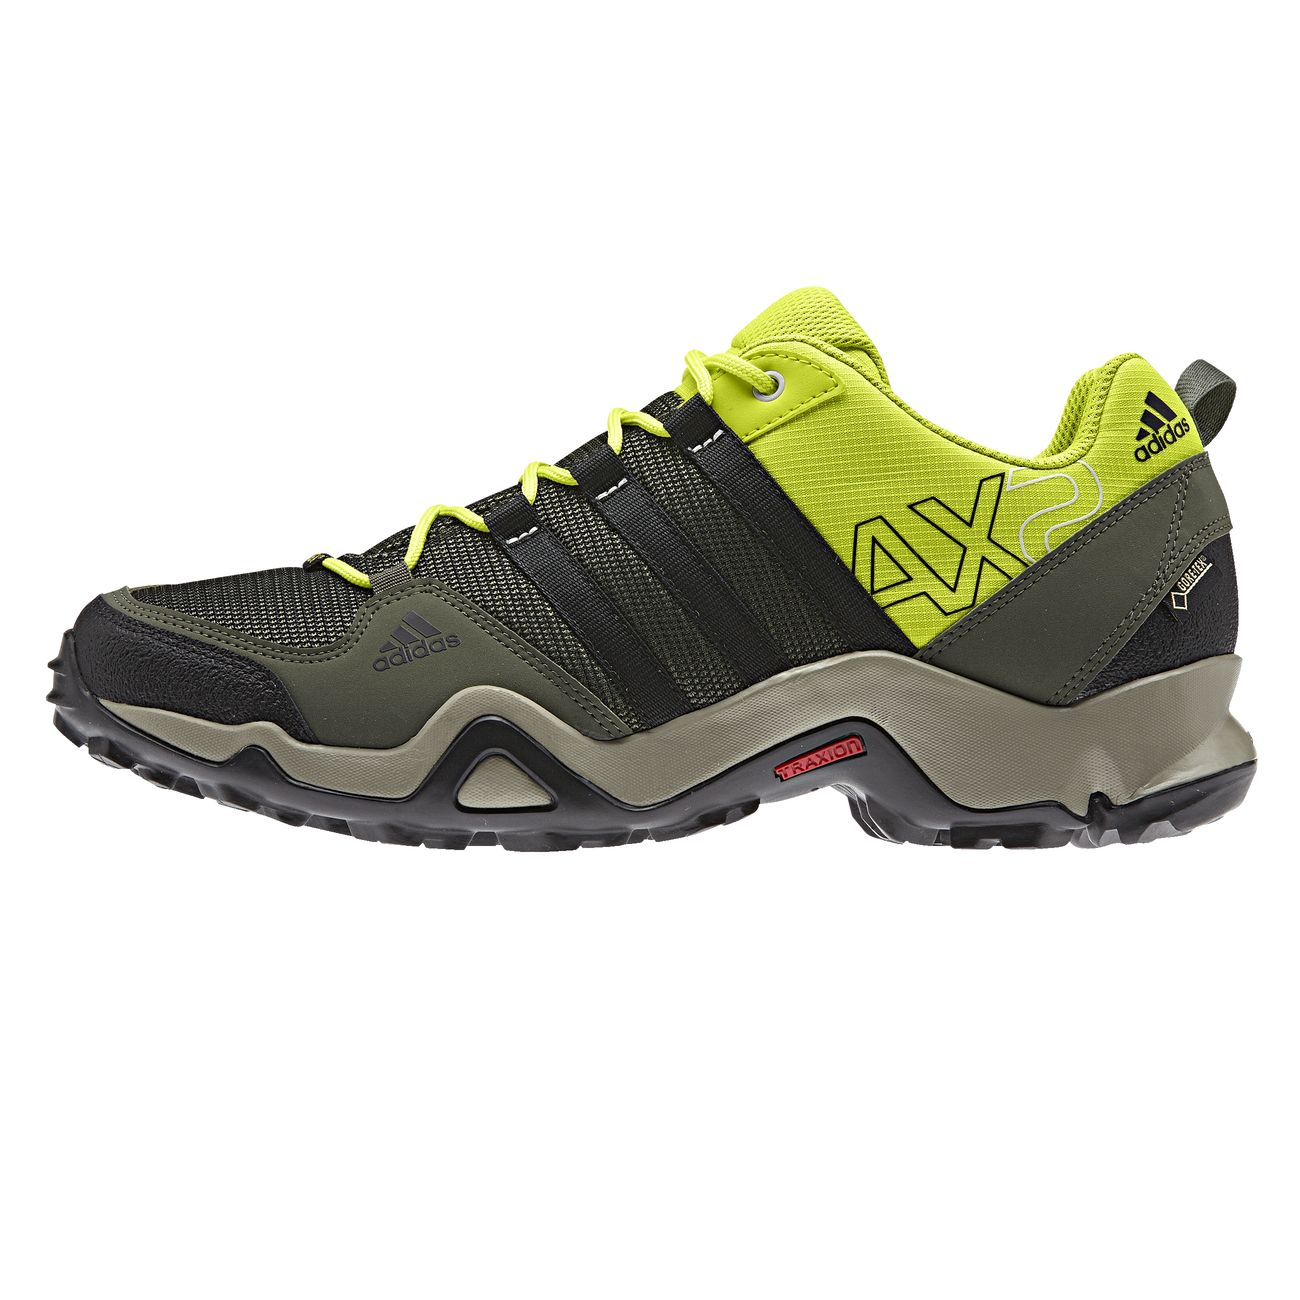 adidas ax2 gtx gore tex schuhe wanderschuhe trekkingschuhe. Black Bedroom Furniture Sets. Home Design Ideas